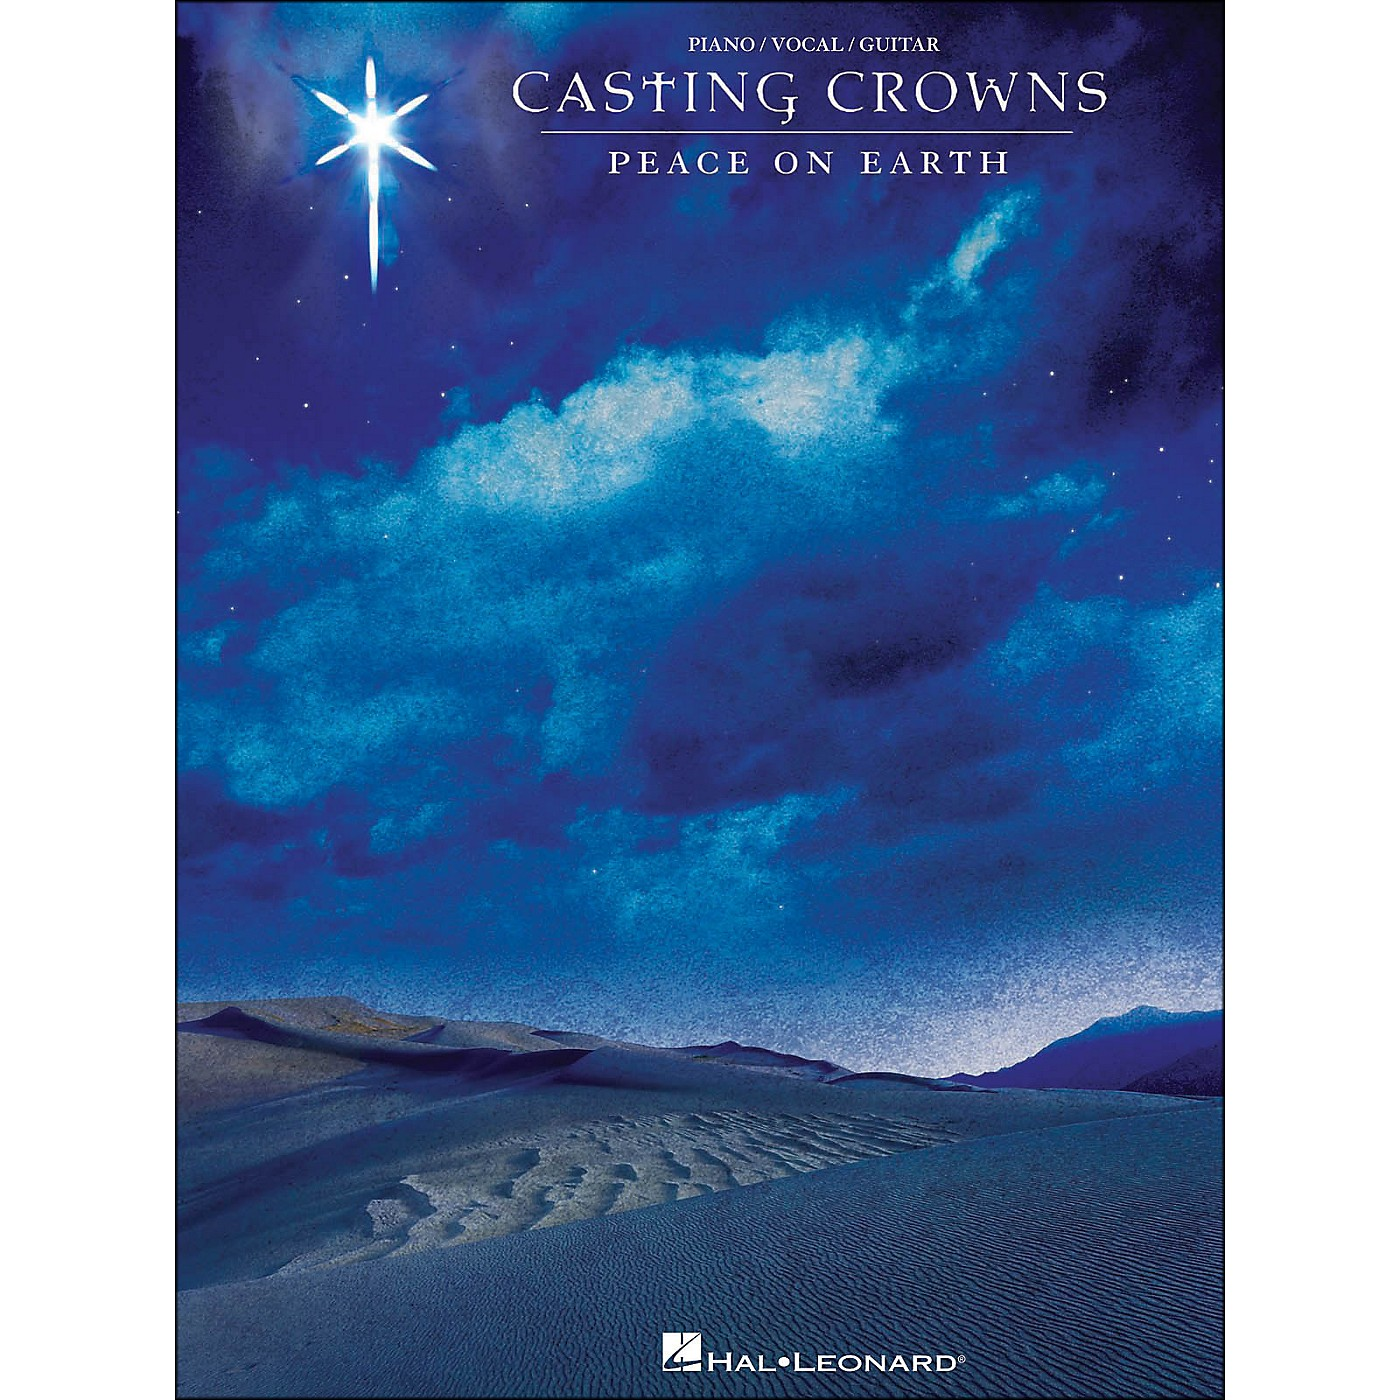 Hal Leonard Casting Crowns Peace On Earth arranged for piano, vocal, and guitar (P/V/G) thumbnail